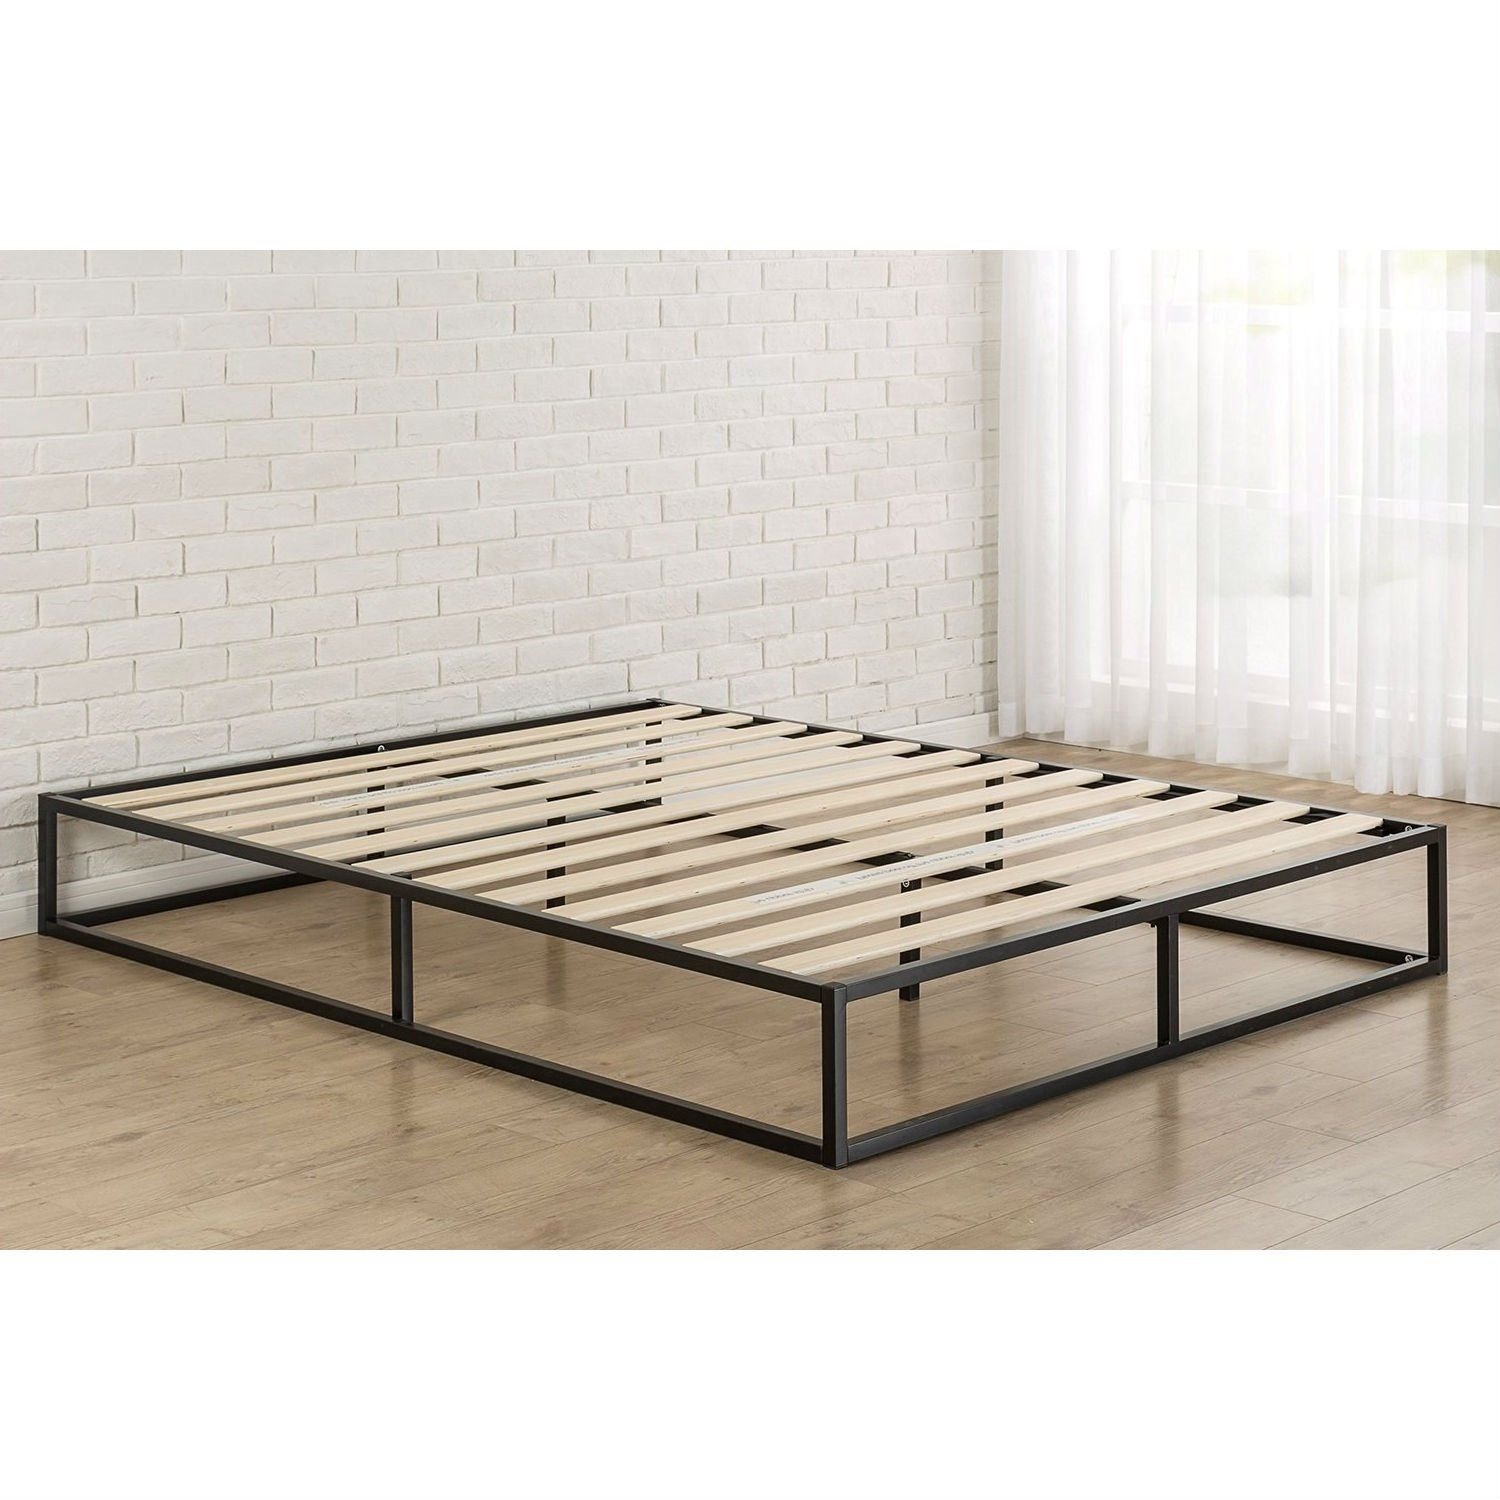 Queen Size Modern 10 Inch Low Profile Metal Platform Bed Frame With Wood Slats Metal Platform Bed Low Profile Bed Frame Full Size Bed Frame